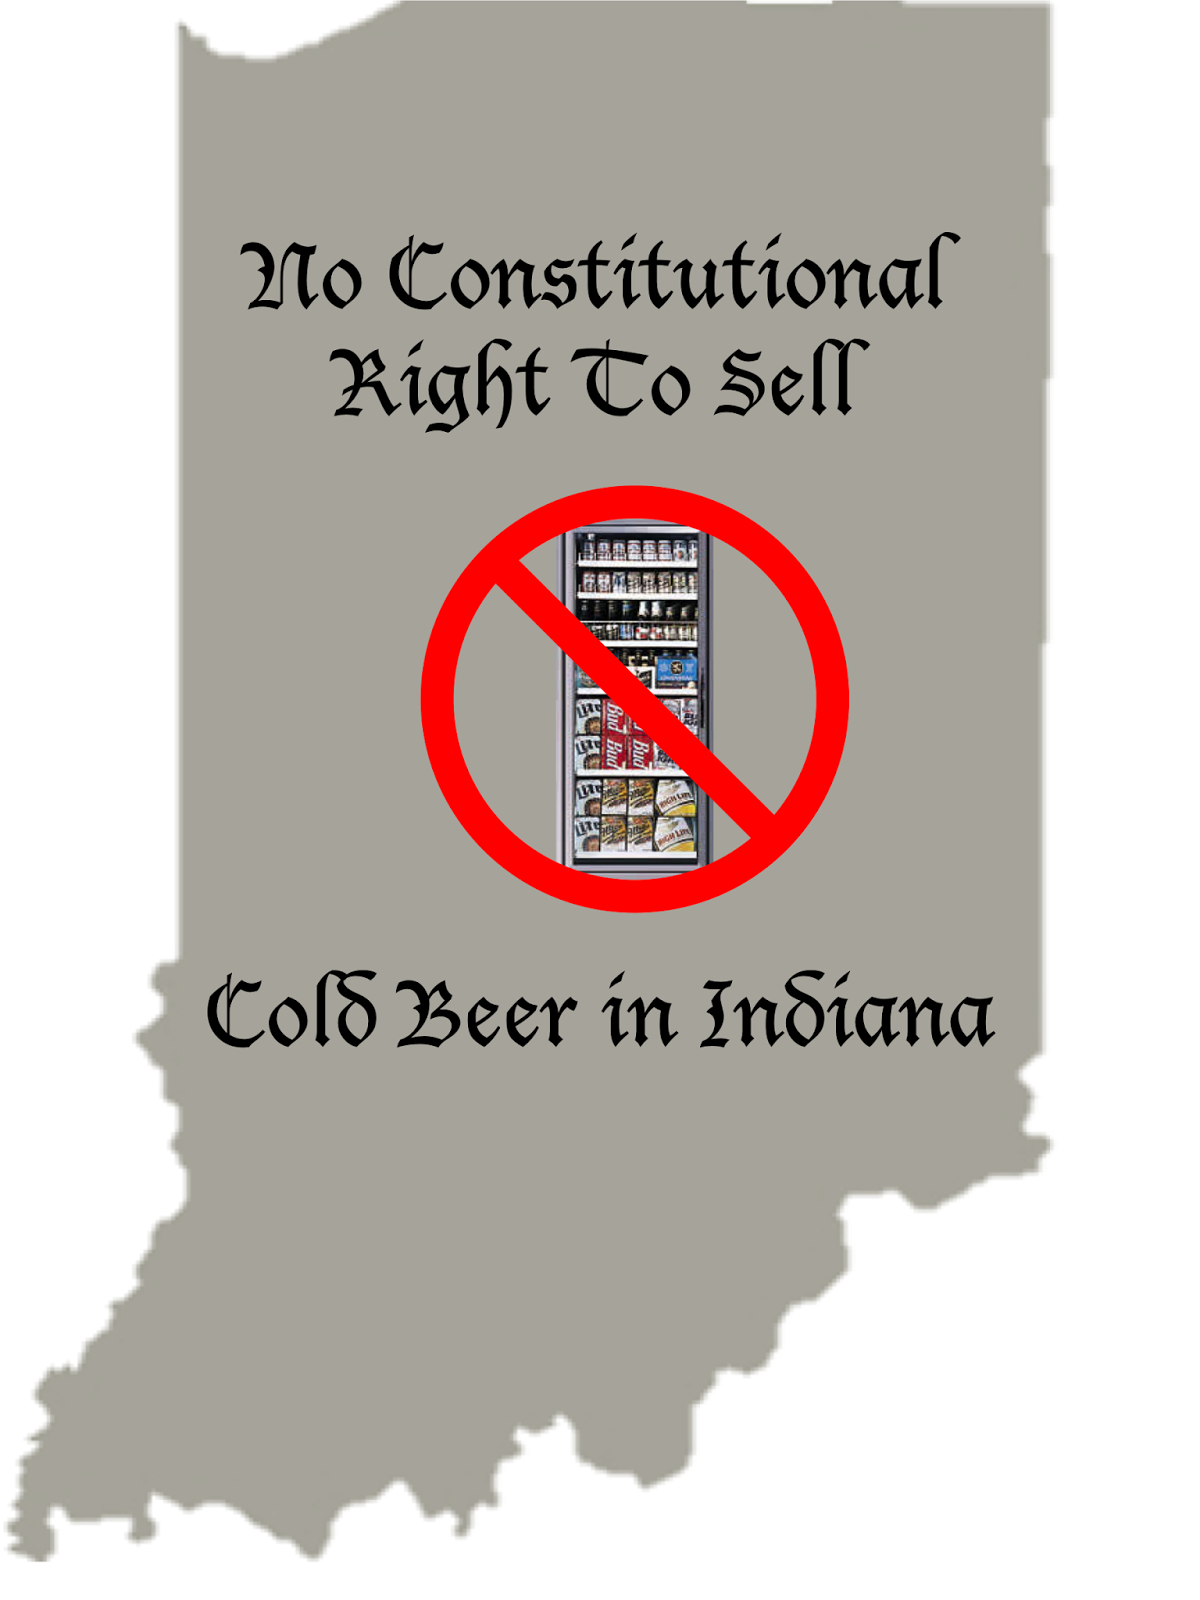 Blog Post Image: No Constitutional Right To Sell Cold Beer in Indiana